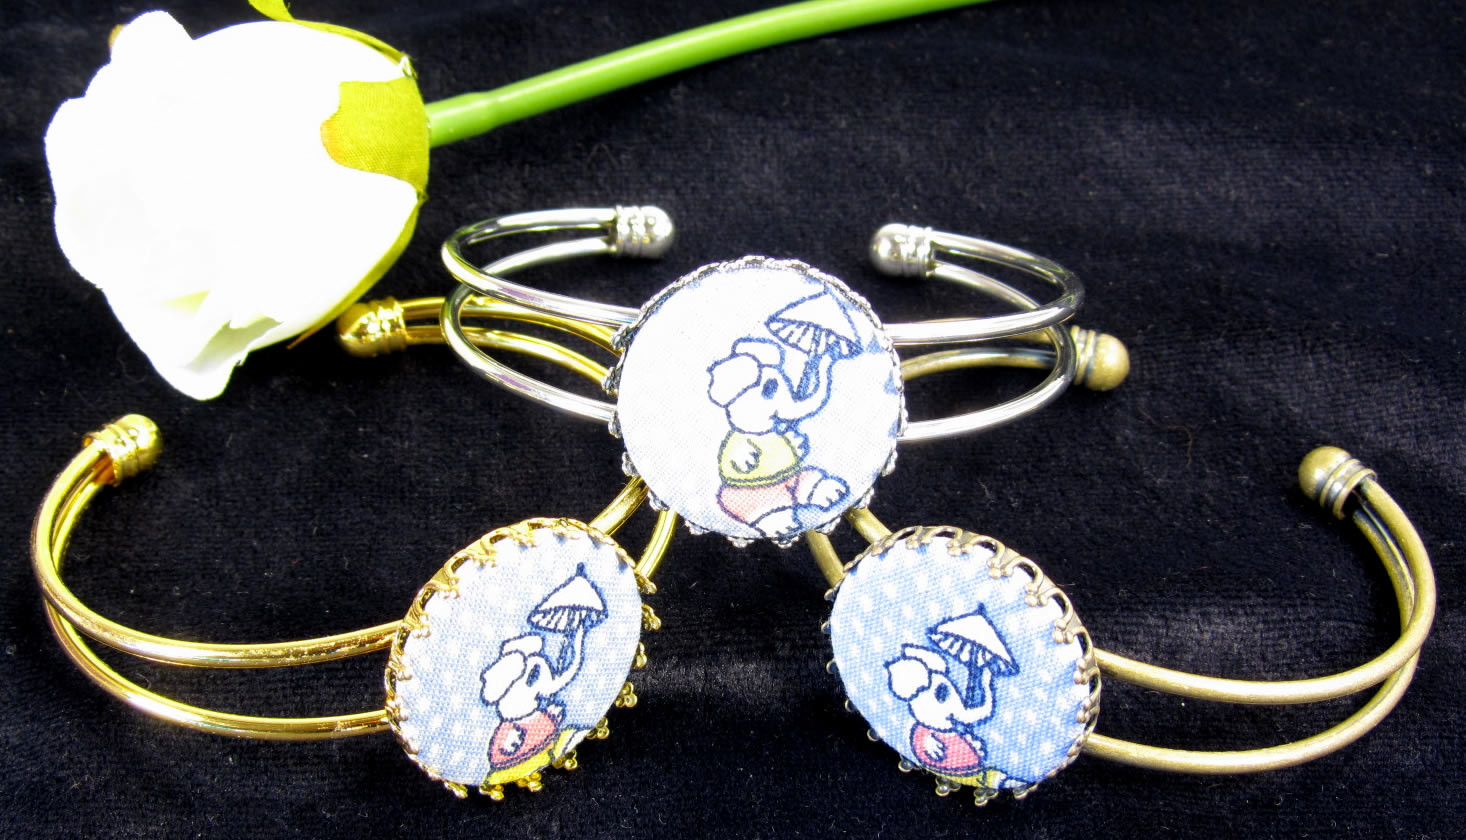 A lovely jewelry bangle made with the help of the badge maker